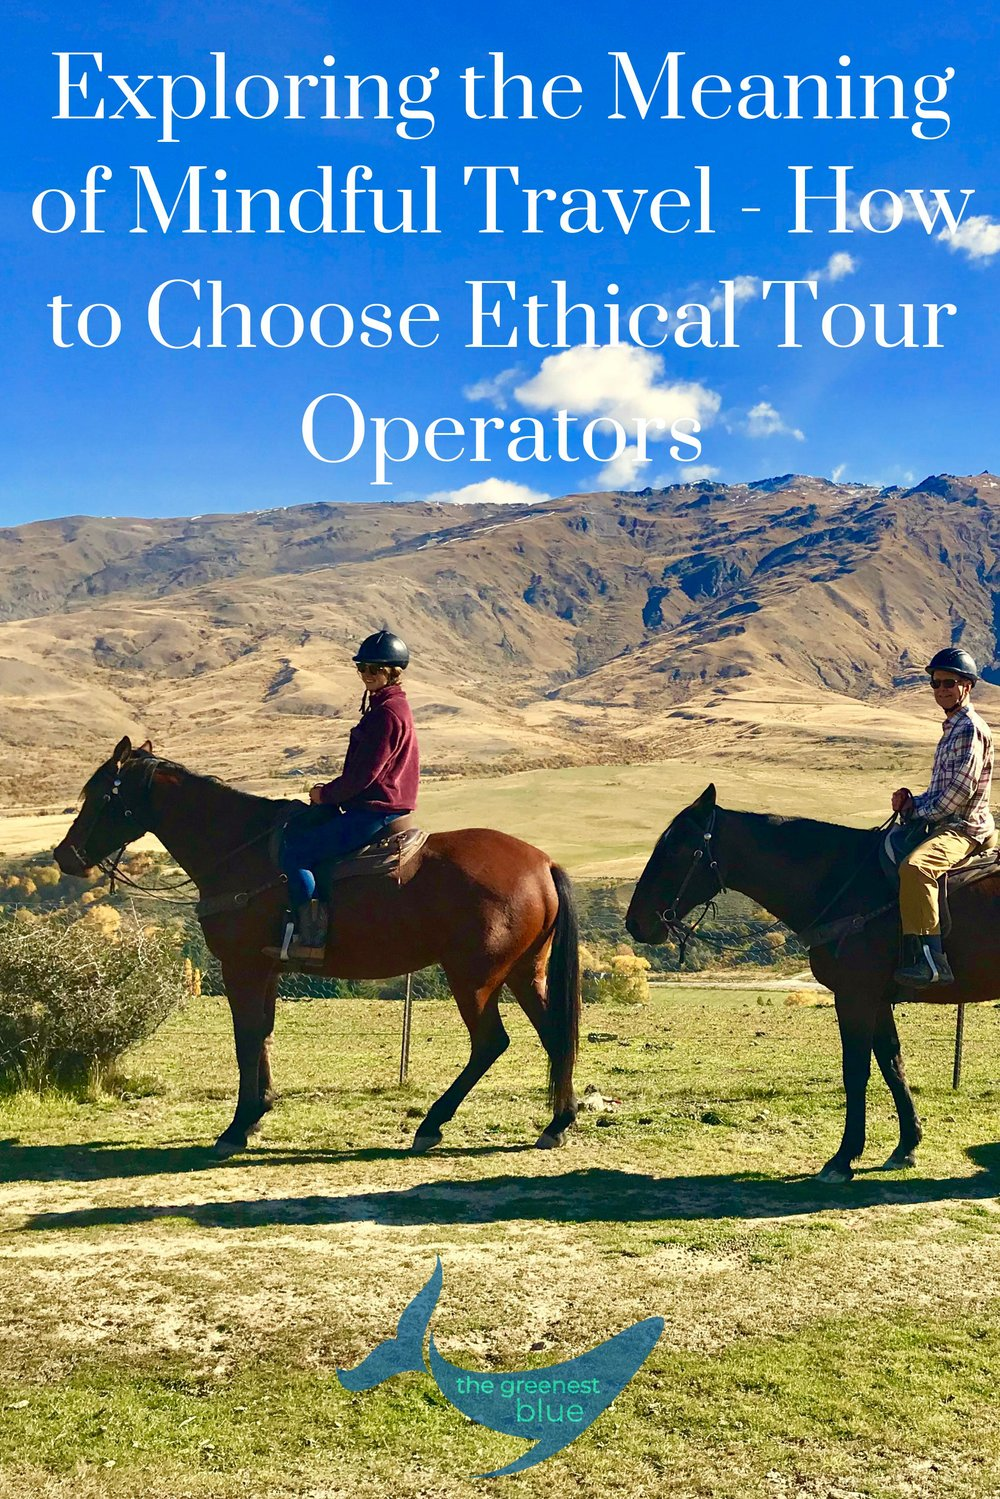 Meaningful Travel - How to Choose an Ethical Tour Operator